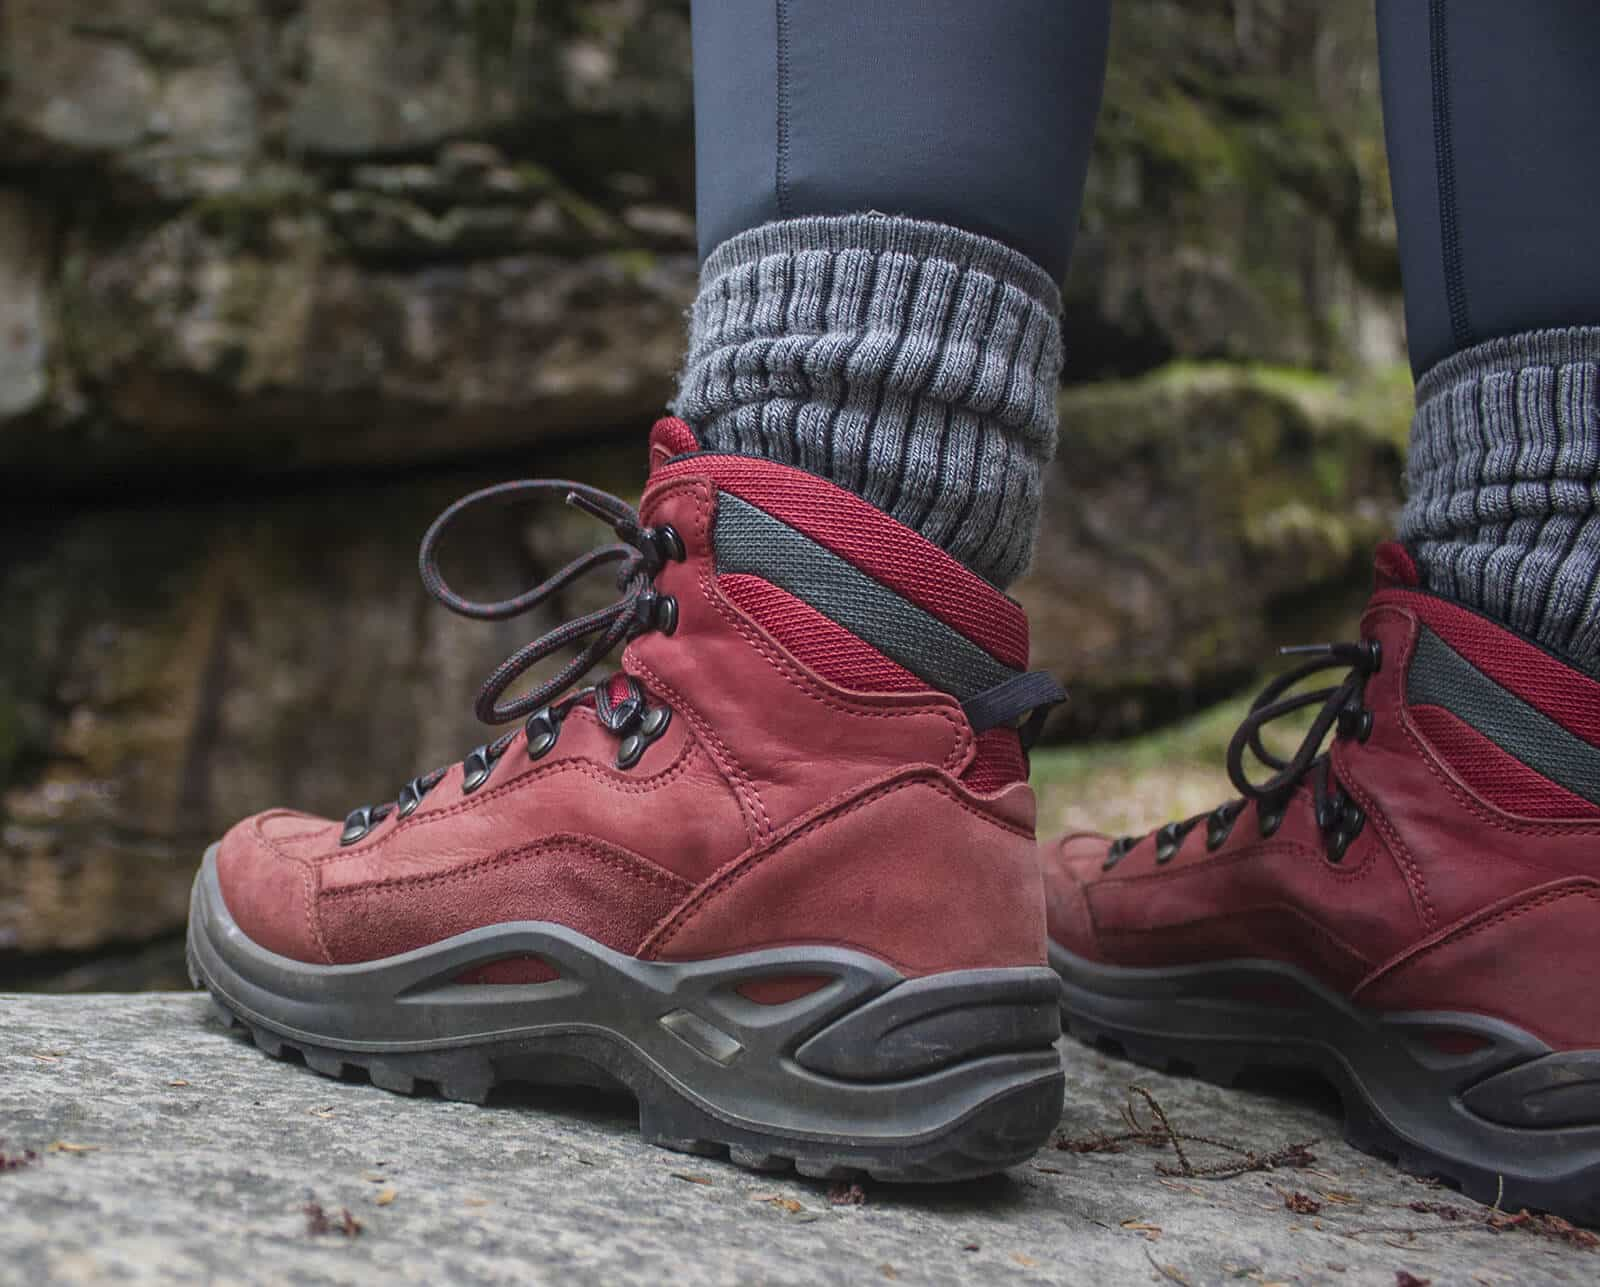 The Best Hiking Socks for All Conditions